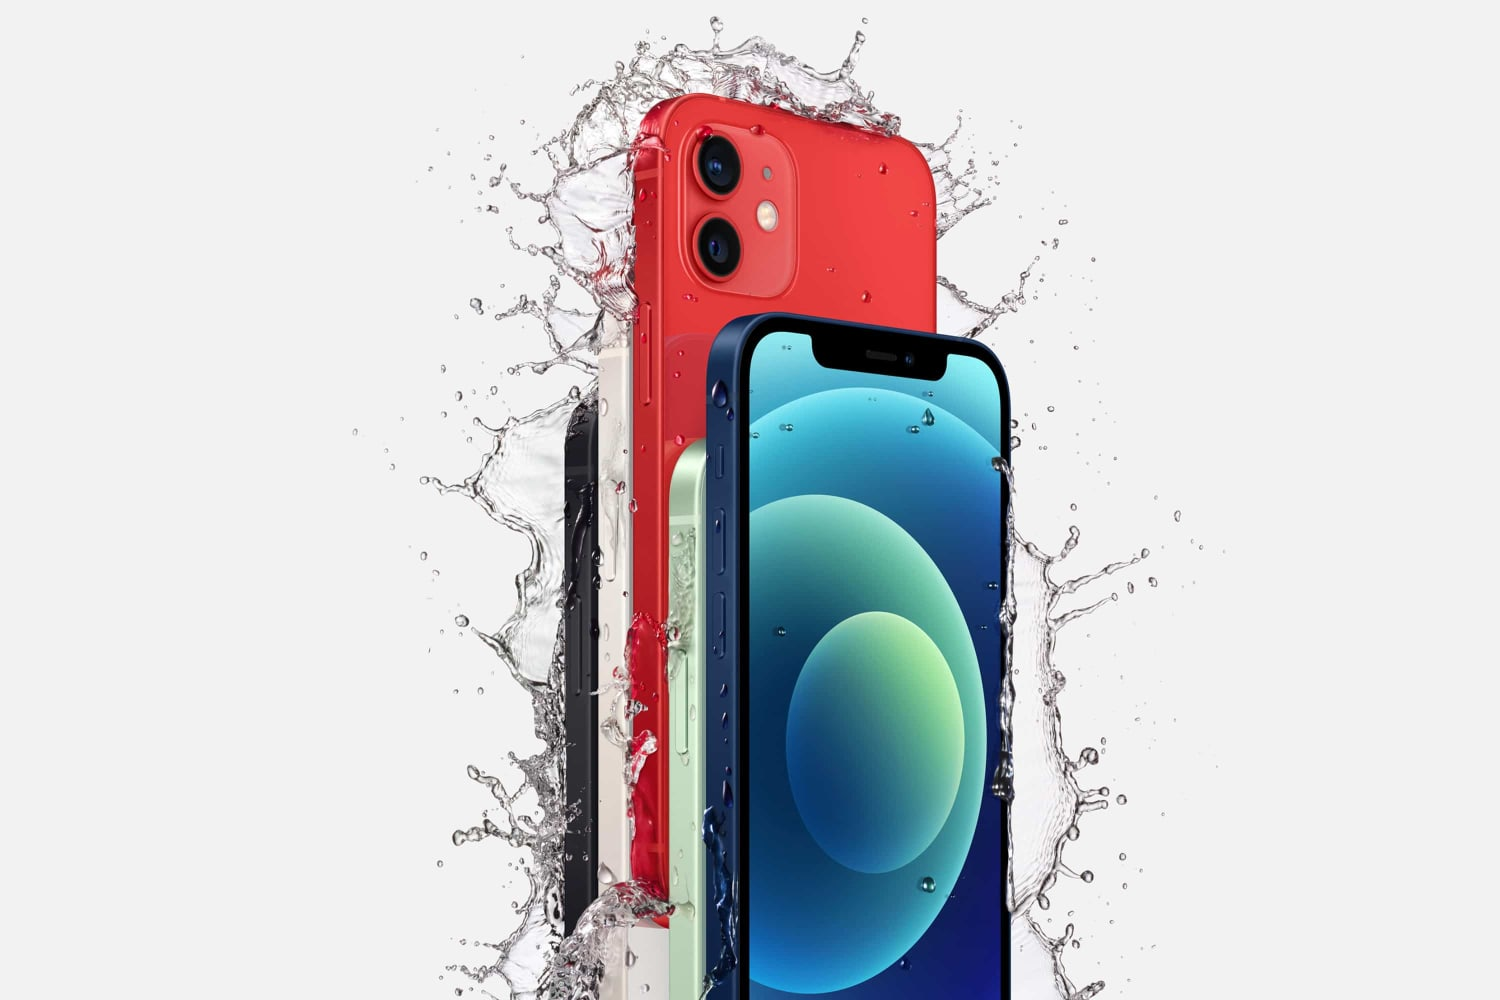 italian-regulators-take-a-stand-against-apple-s-false-water-resistant-claims-20201130-1